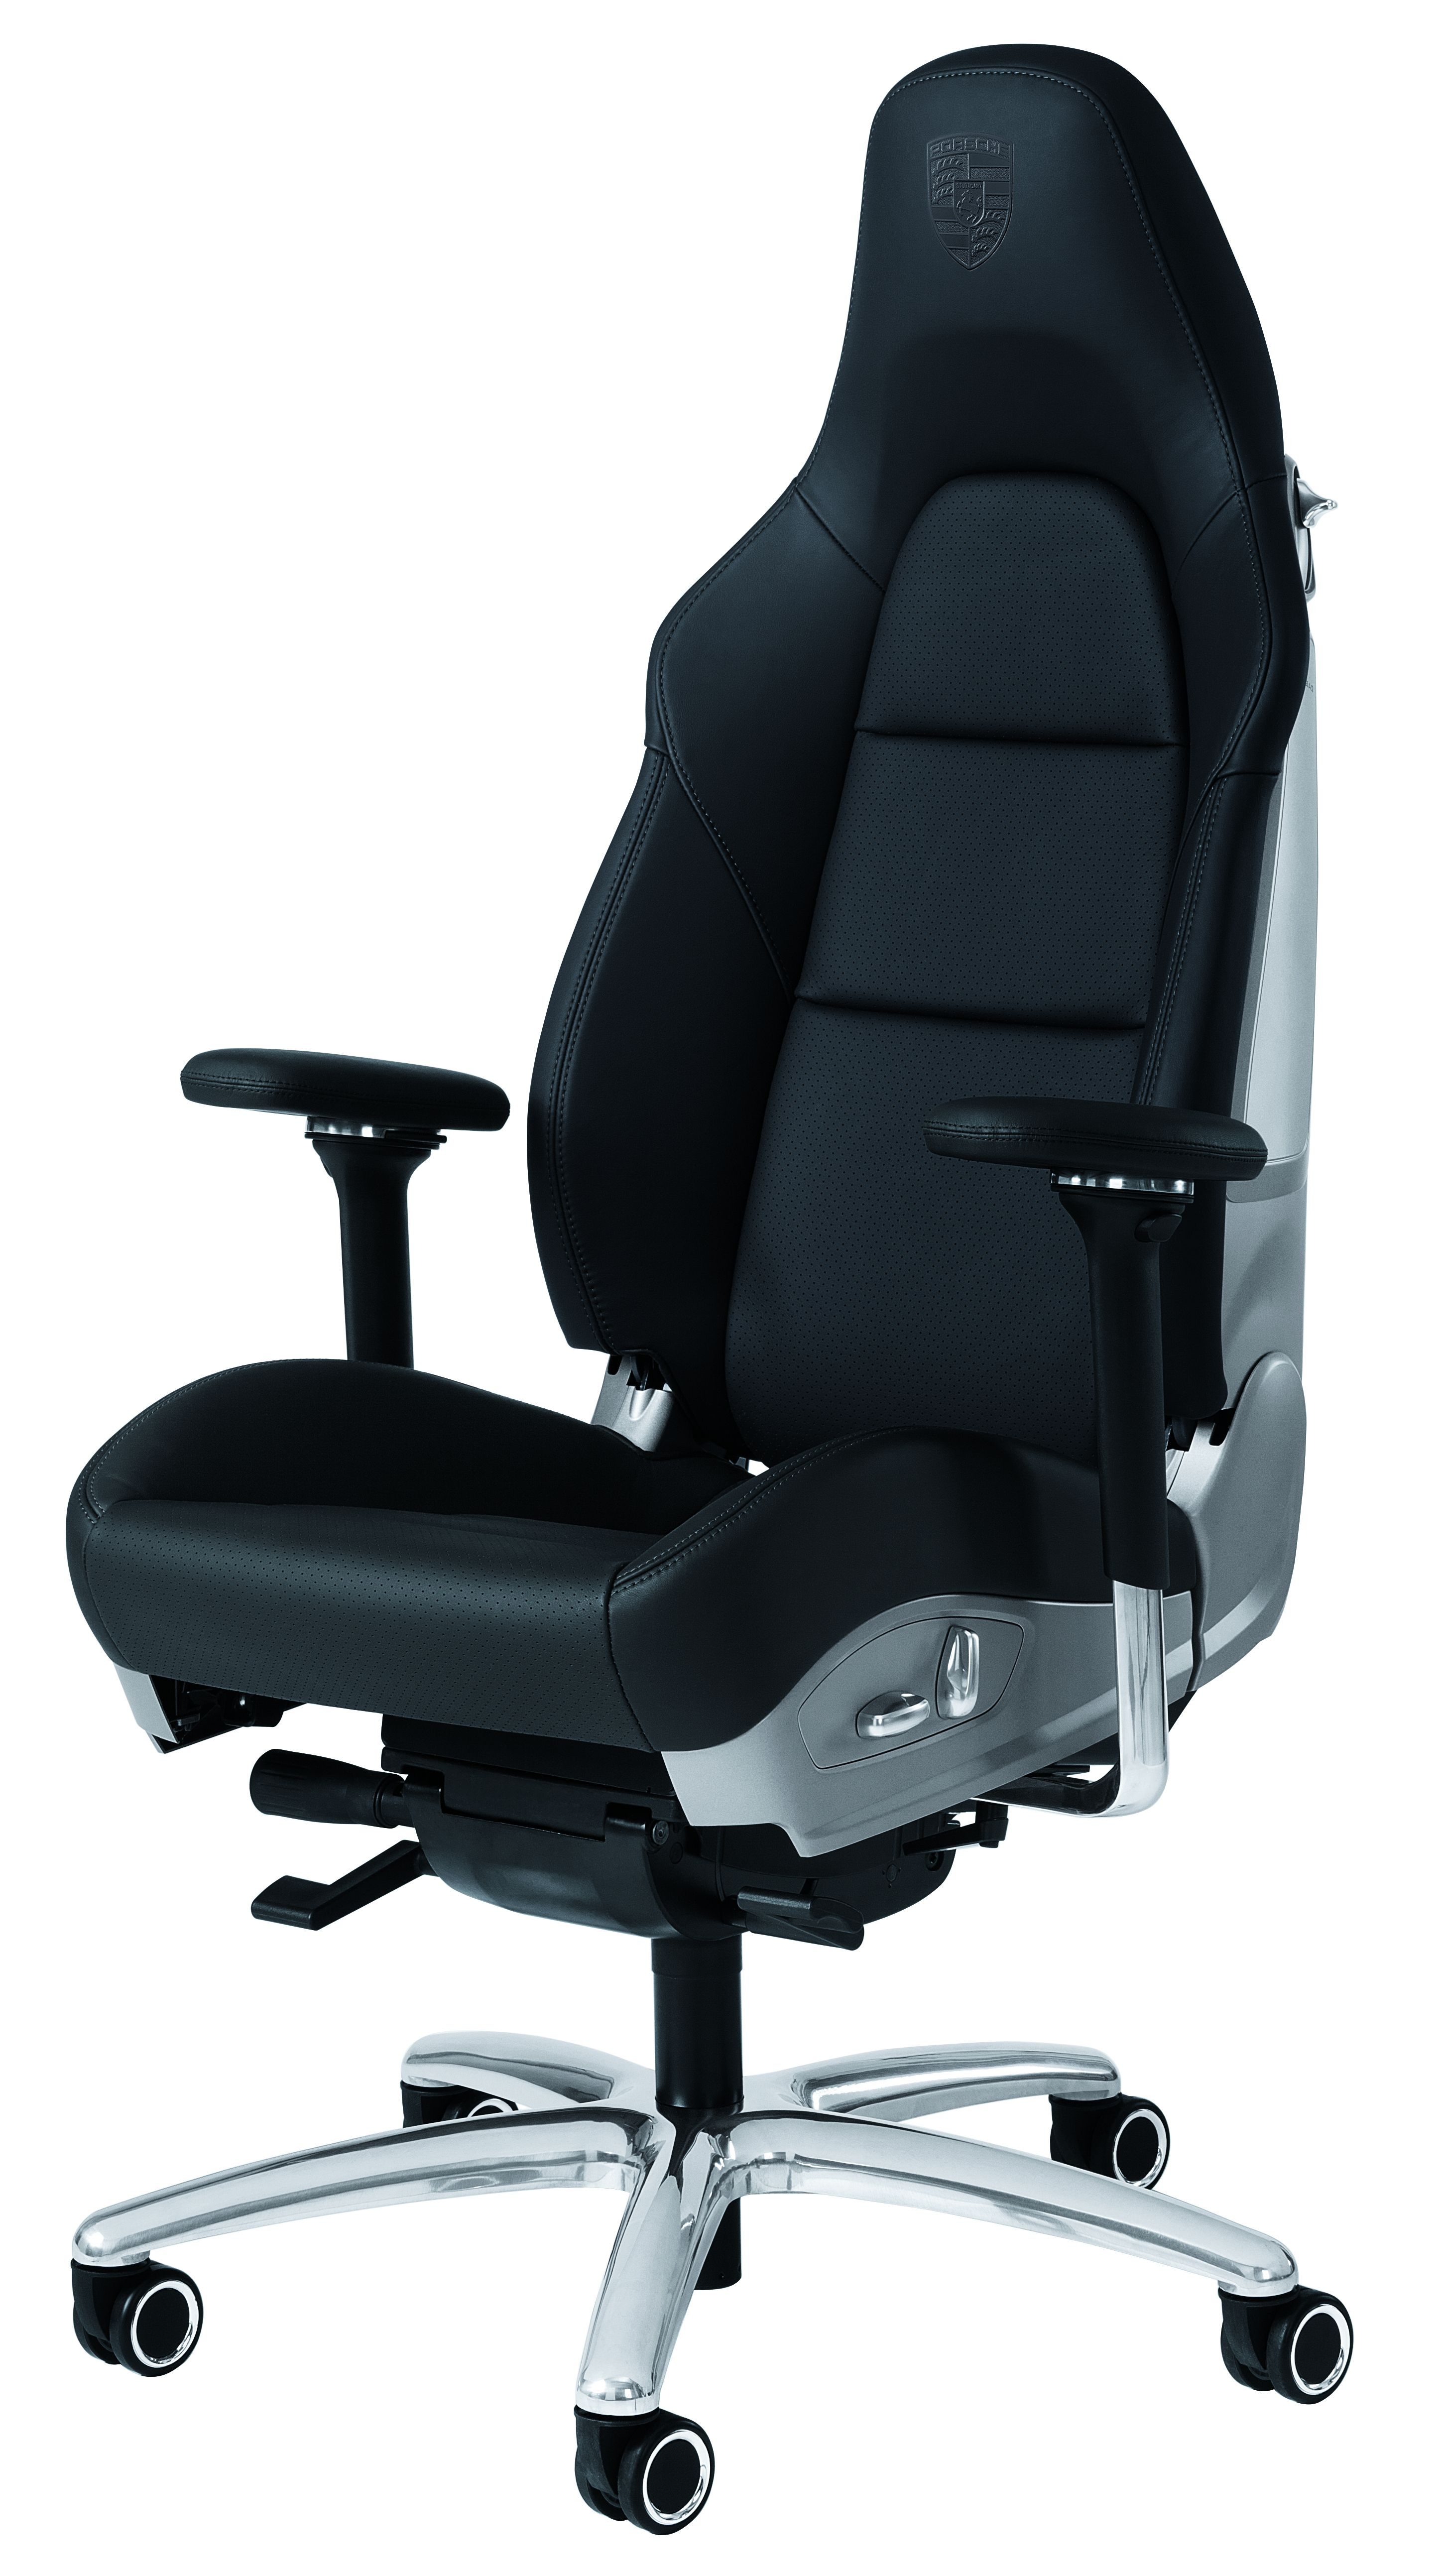 New Home and Office items by Porsche Design Gaming chair